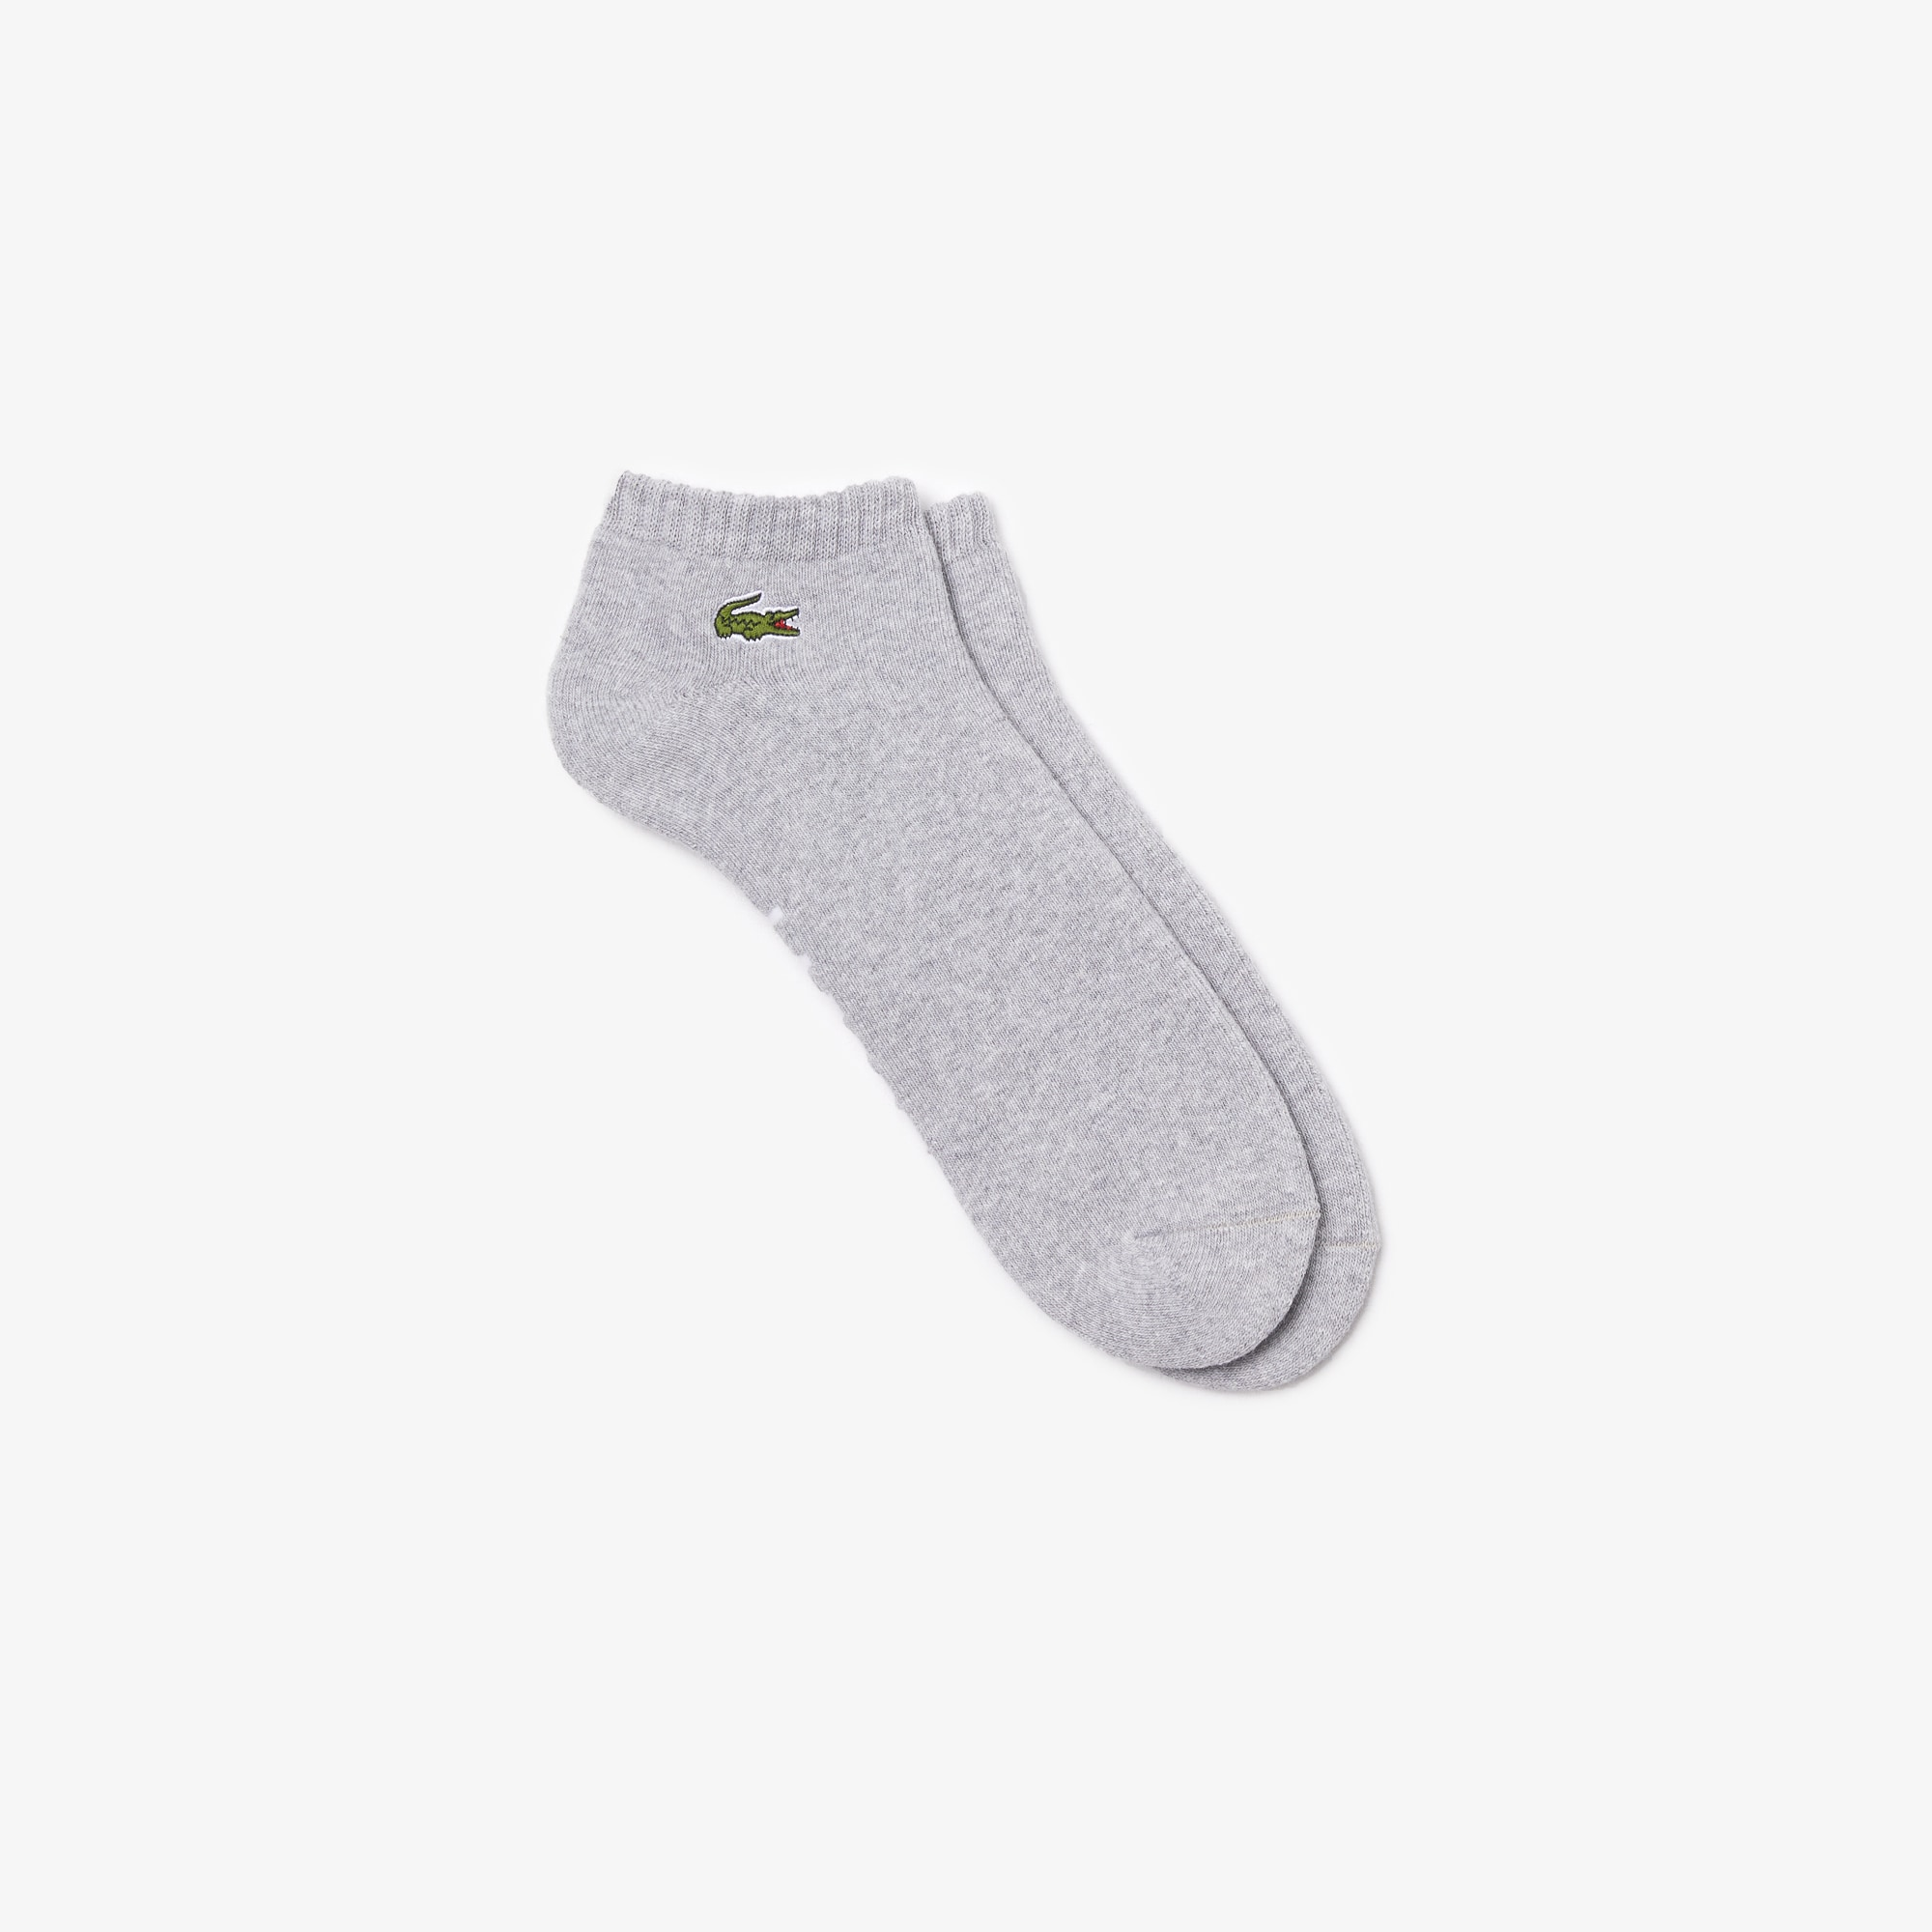 Men's SPORT Low Cut Socks